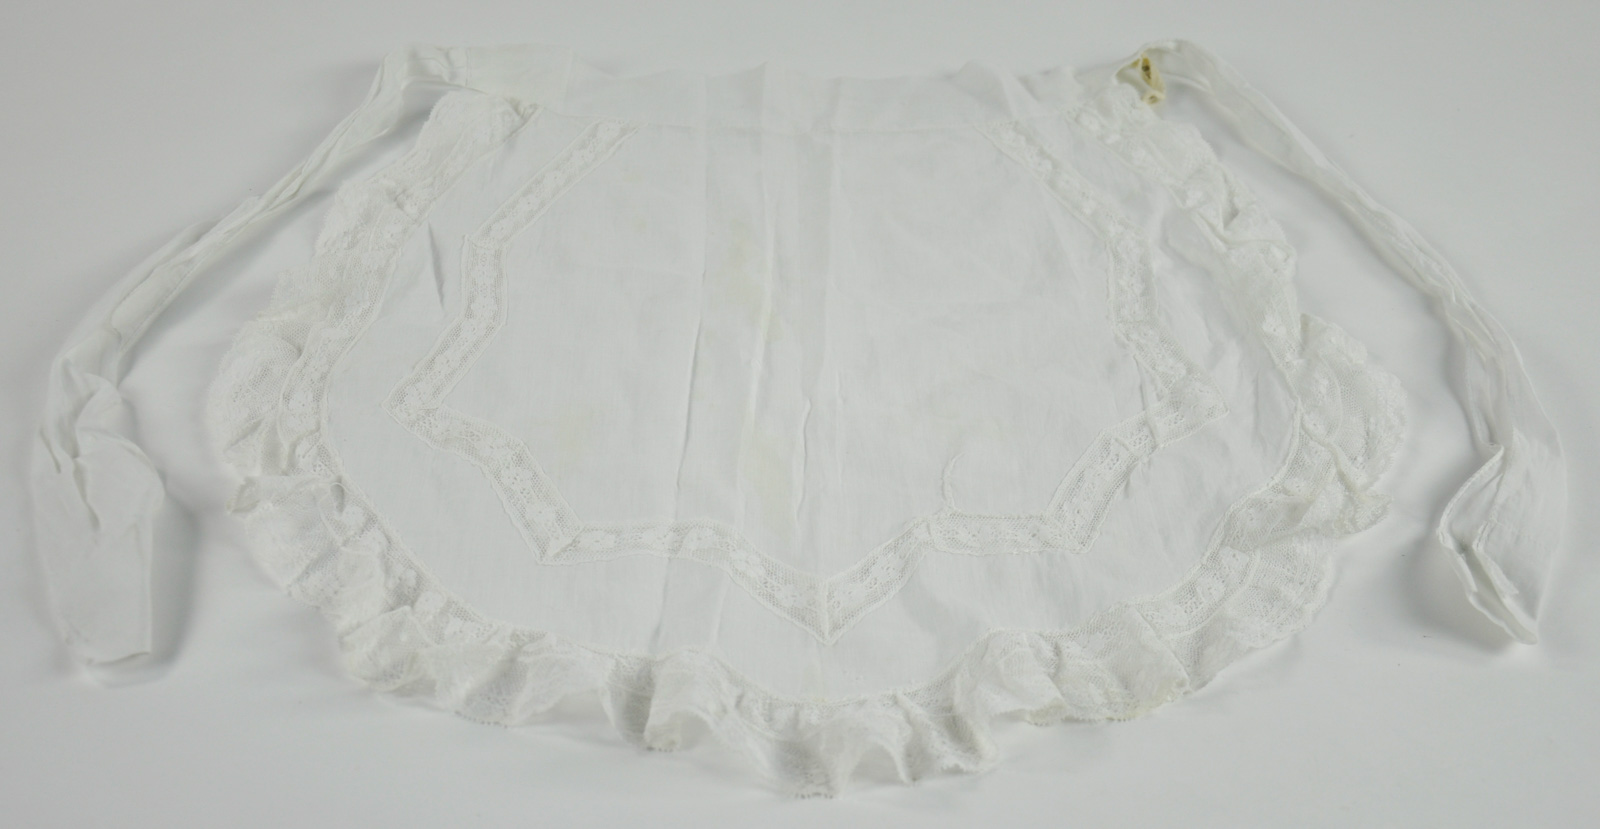 Maid's lawn apron - white cotton with waist ties and lace edging